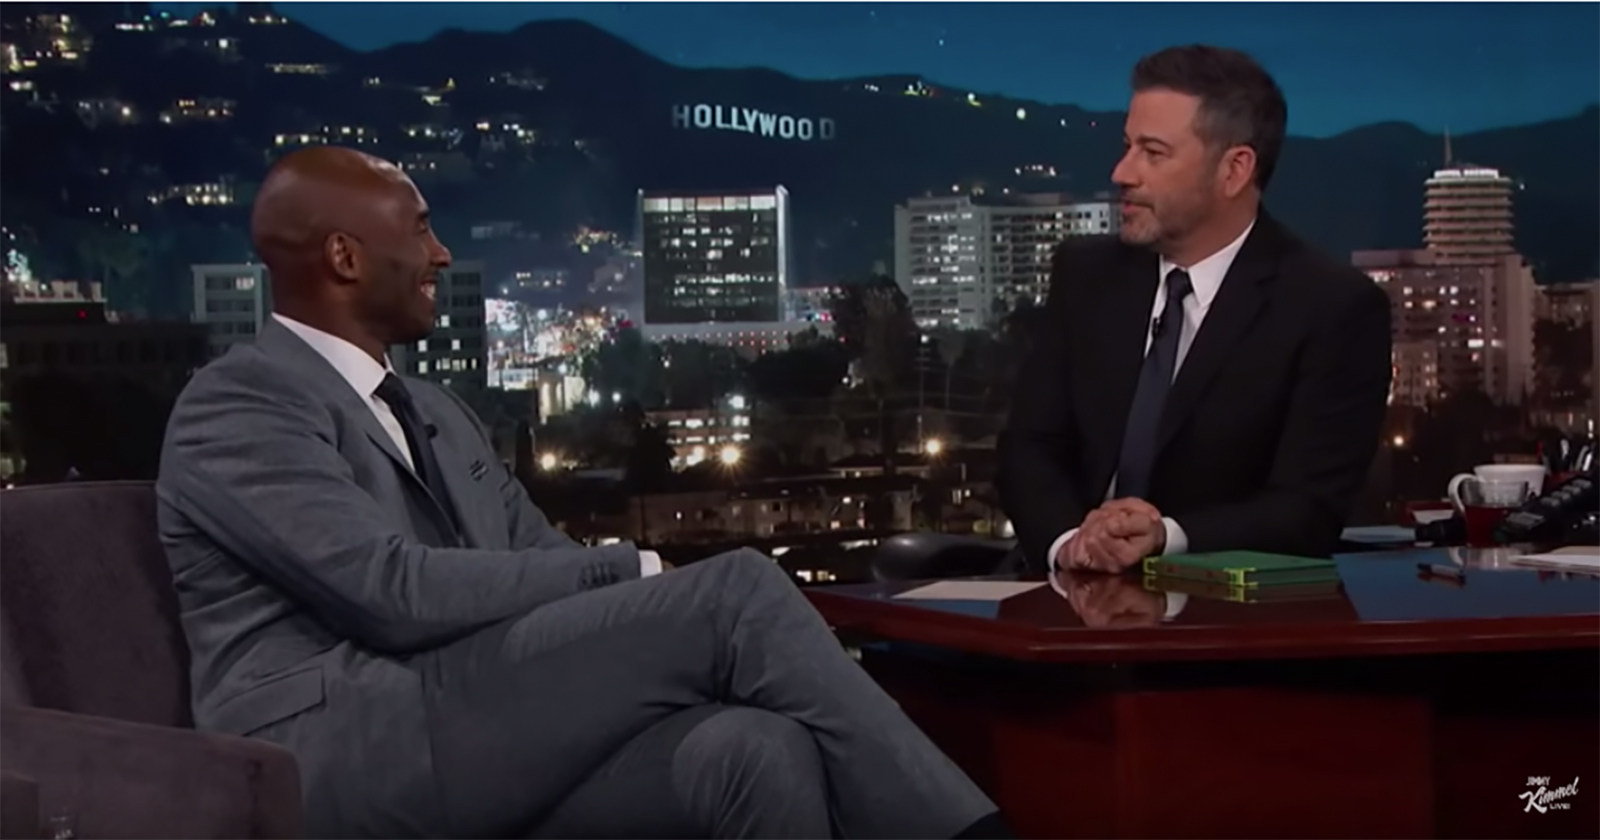 Jimmy Kimmel ditched his studio audience for a somber tribute to Kobe